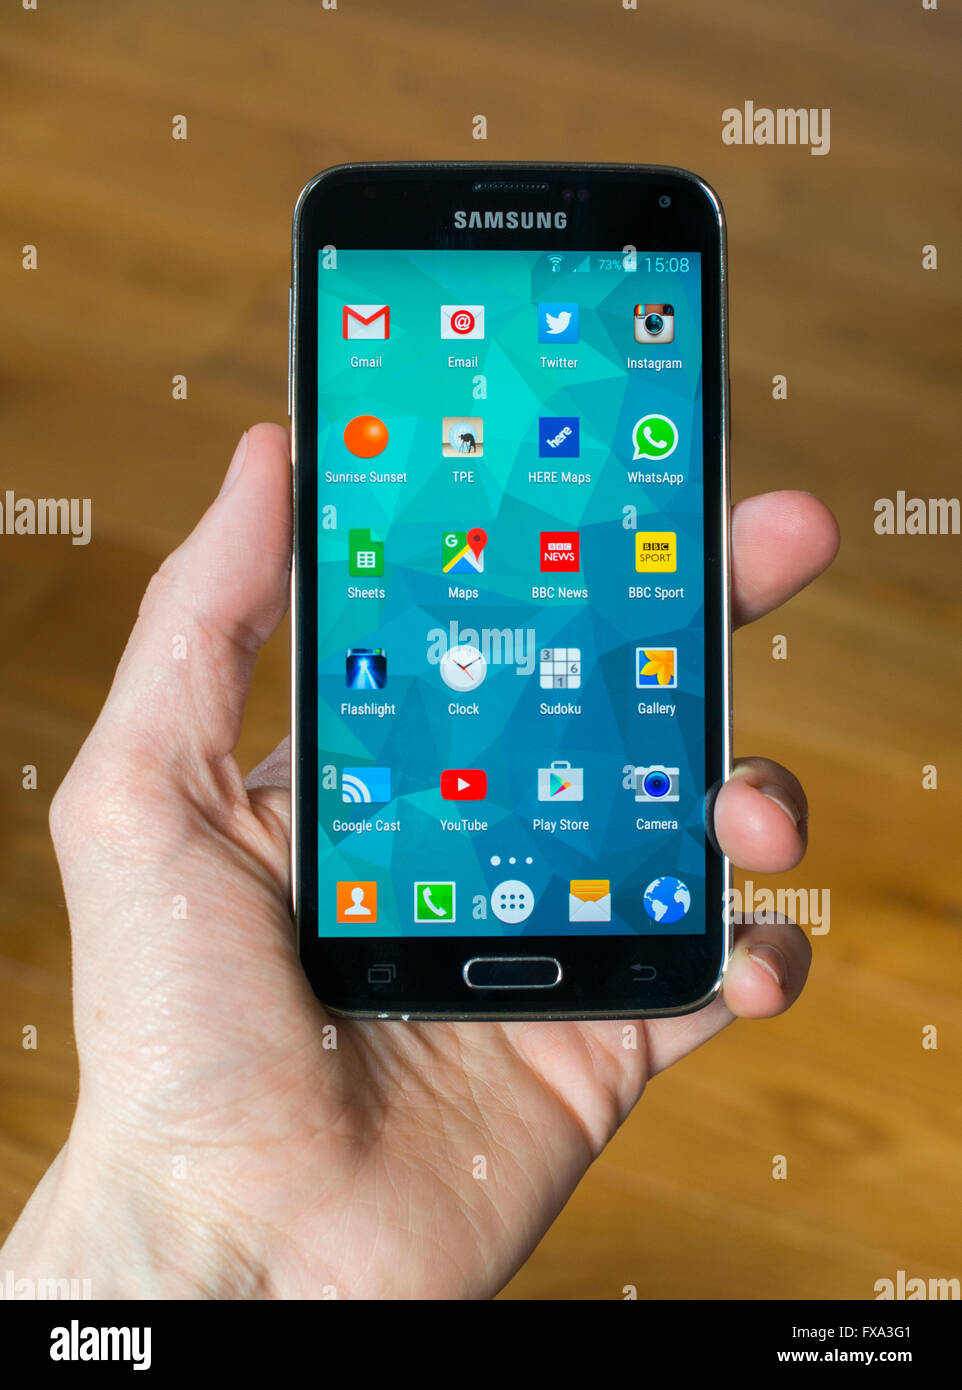 A hand holding a Samsung S5 phone with the home screen open showing apps. - Stock Image